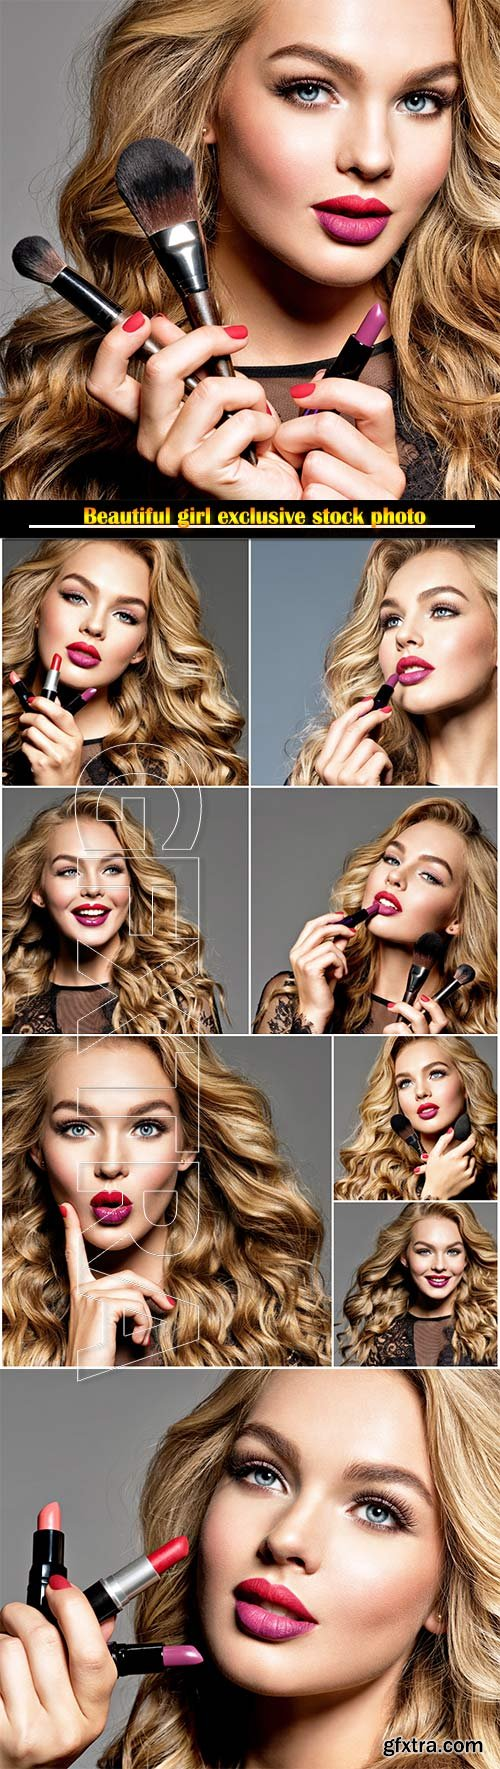 Attractive fashion model with long curly hair and fashion makeup